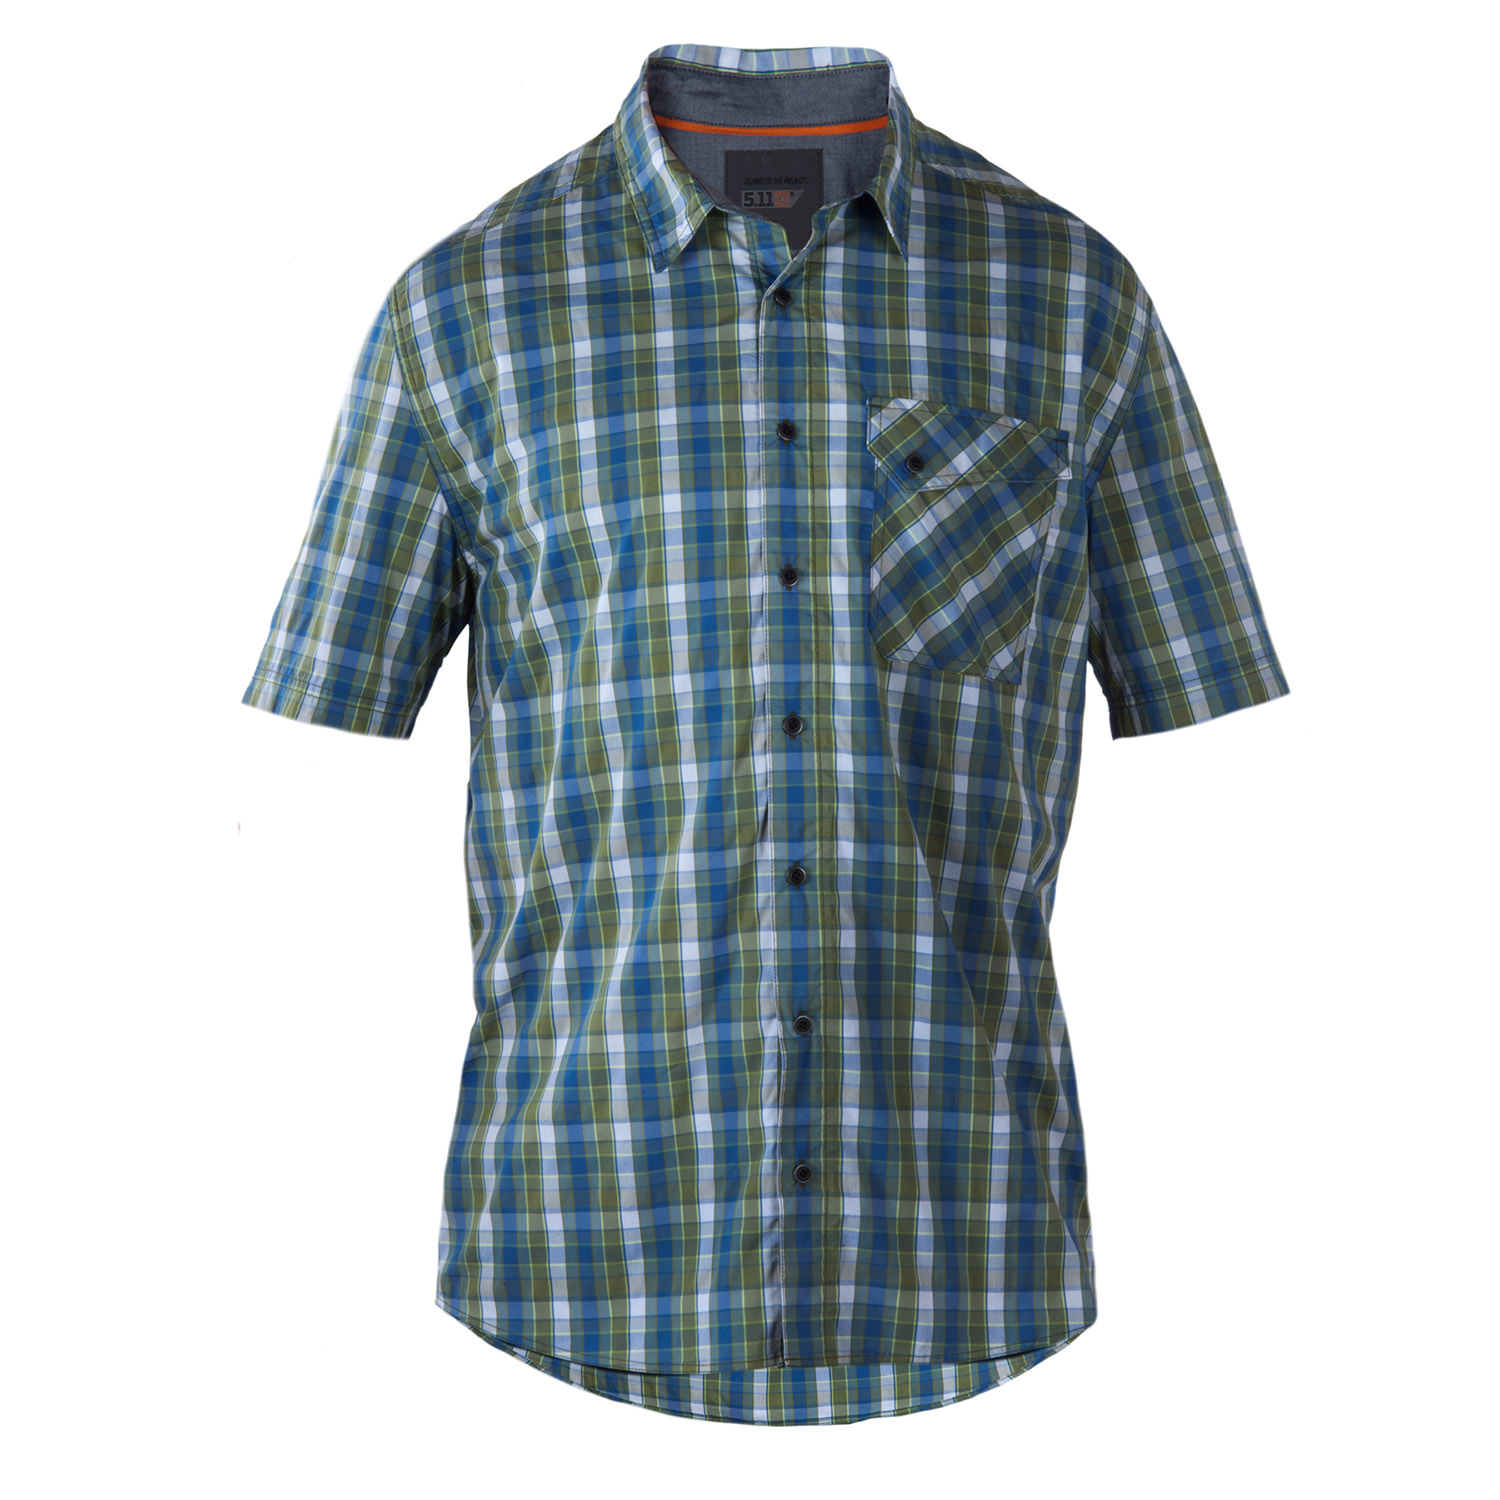 5.11 Tactical Covert Single Flex Shirt